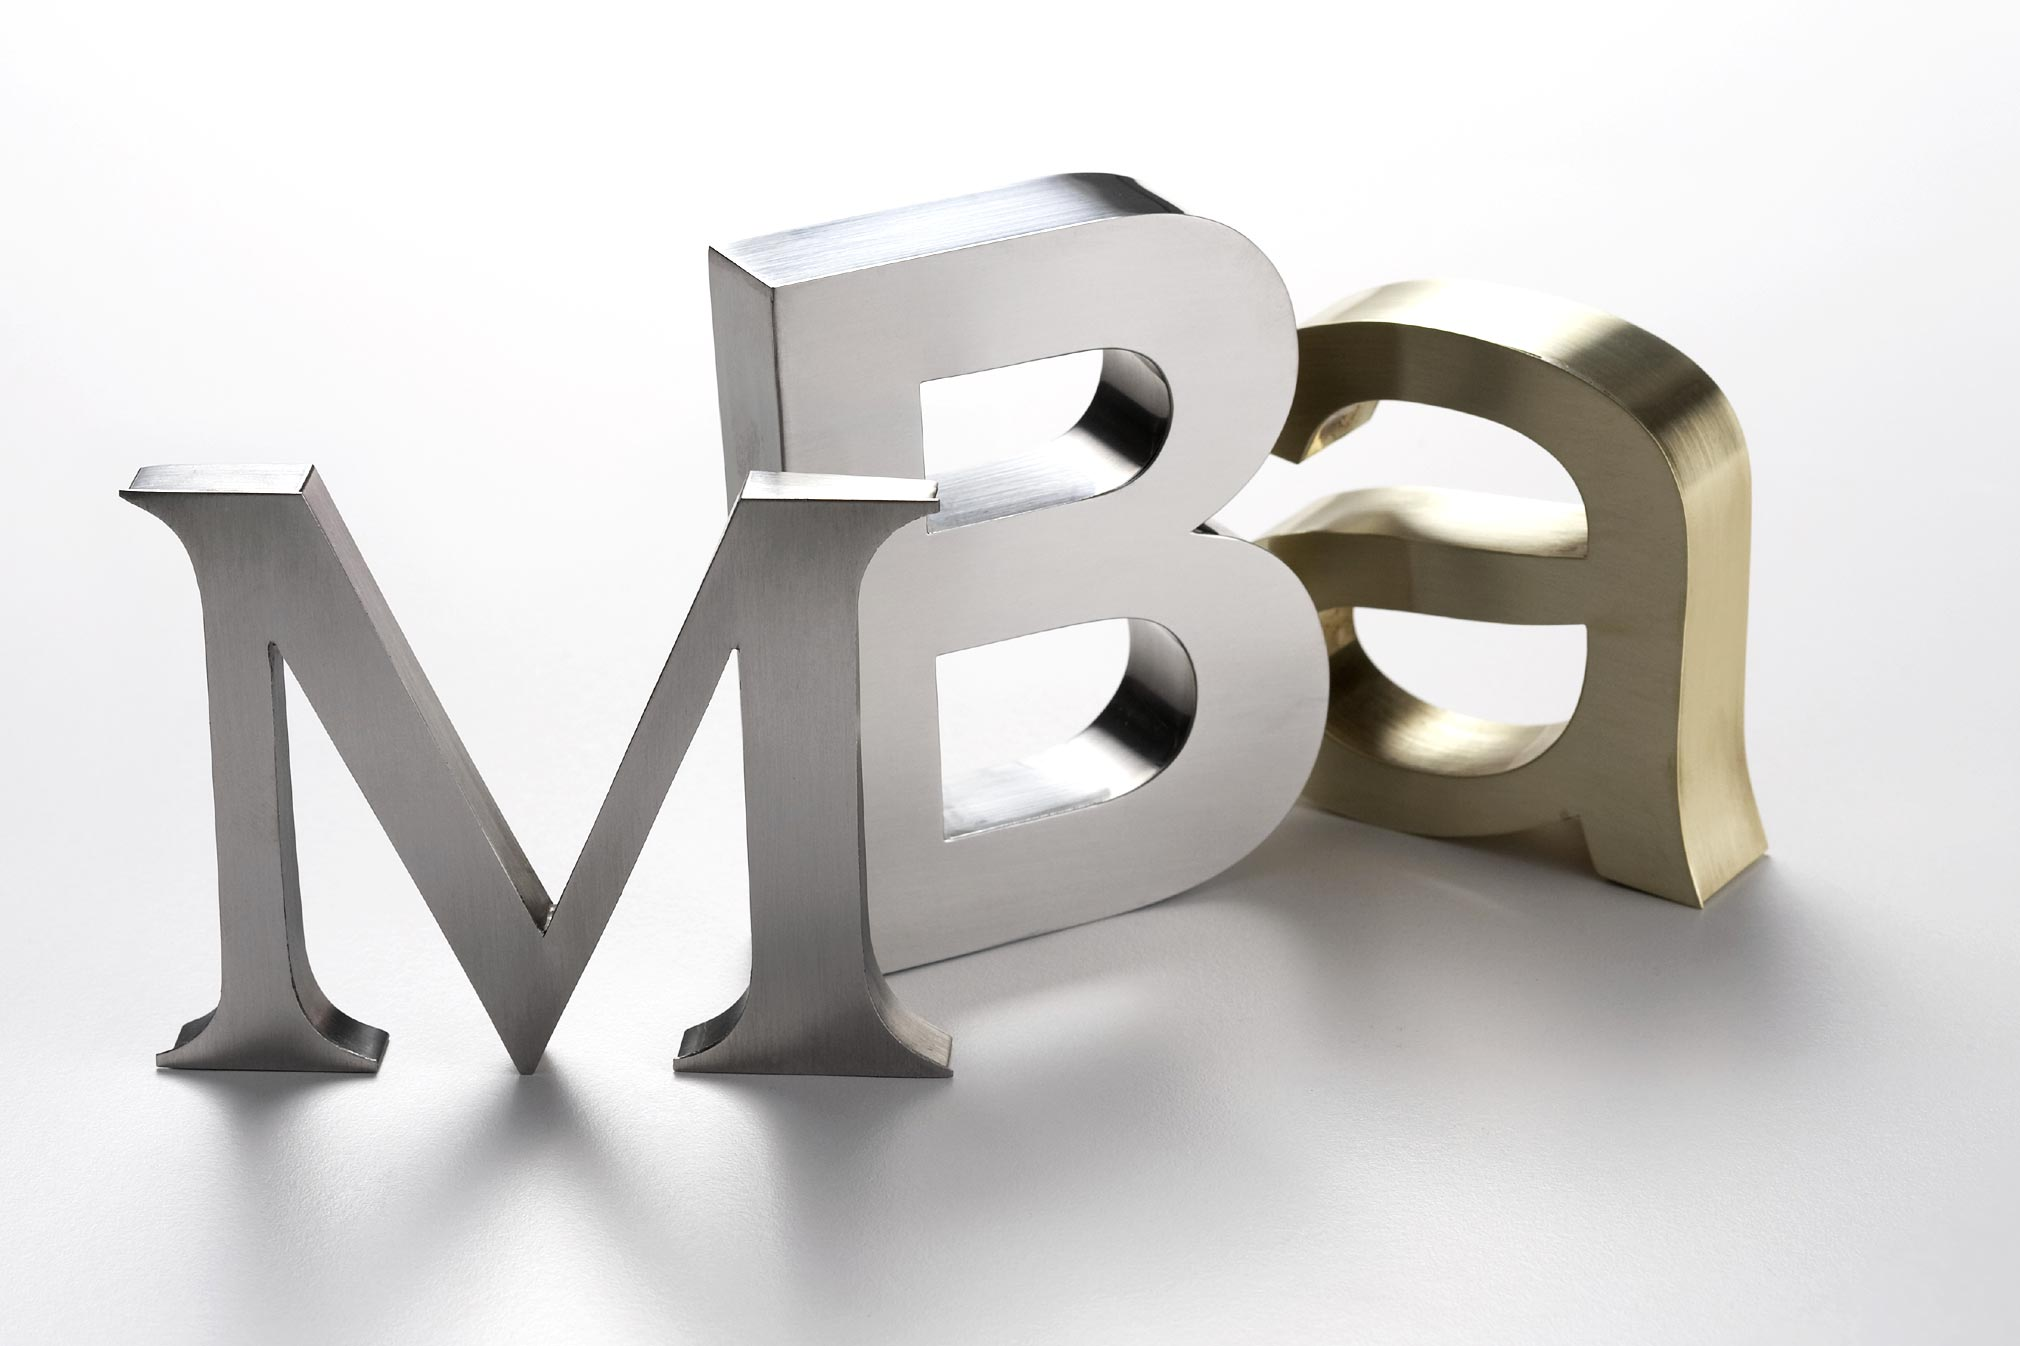 Advantages of MBA through distance learning mode